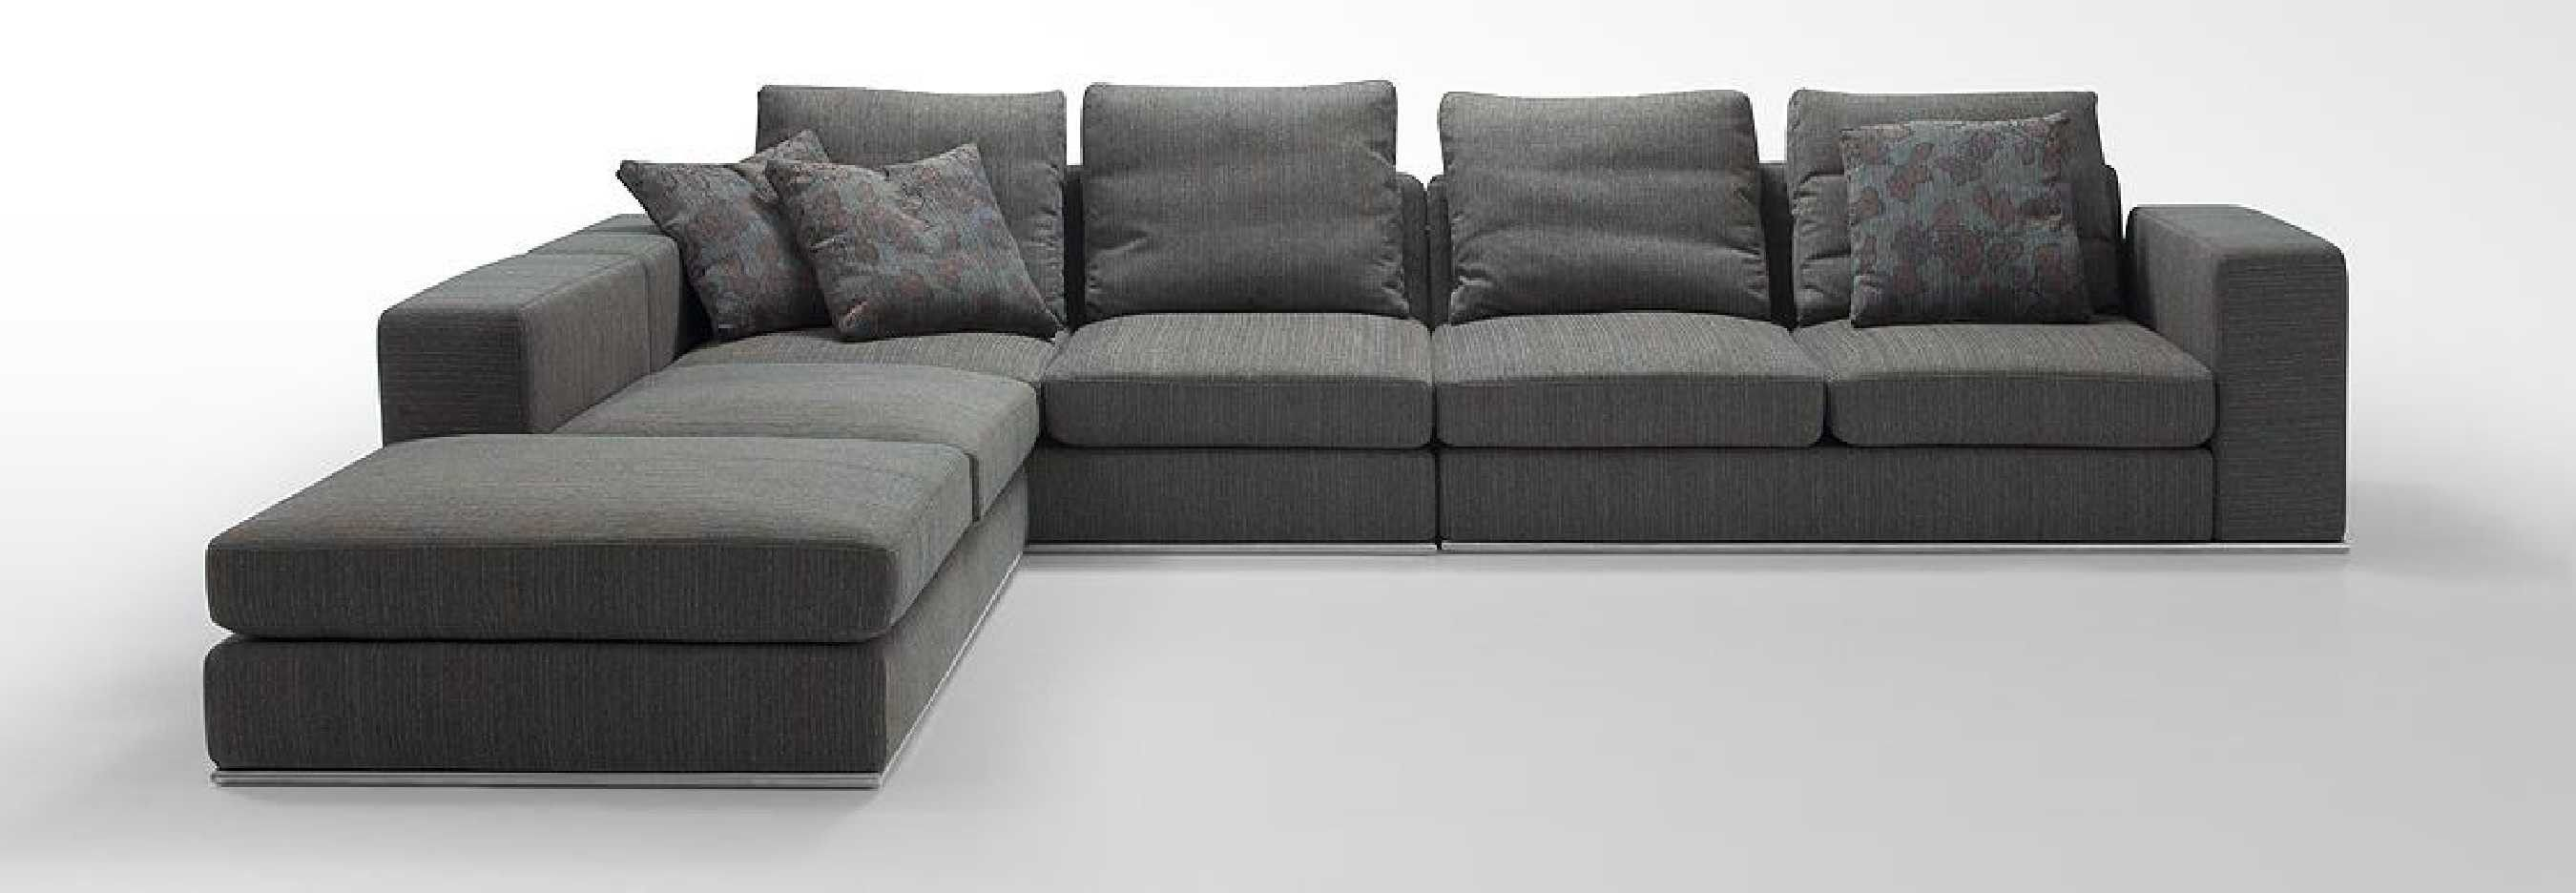 Appealing L Shaped Sofa Come With Grey Modern Comfy Fabric L Shaped Sofa With Grey Fabric : l shaped chaise sofa - Sectionals, Sofas & Couches